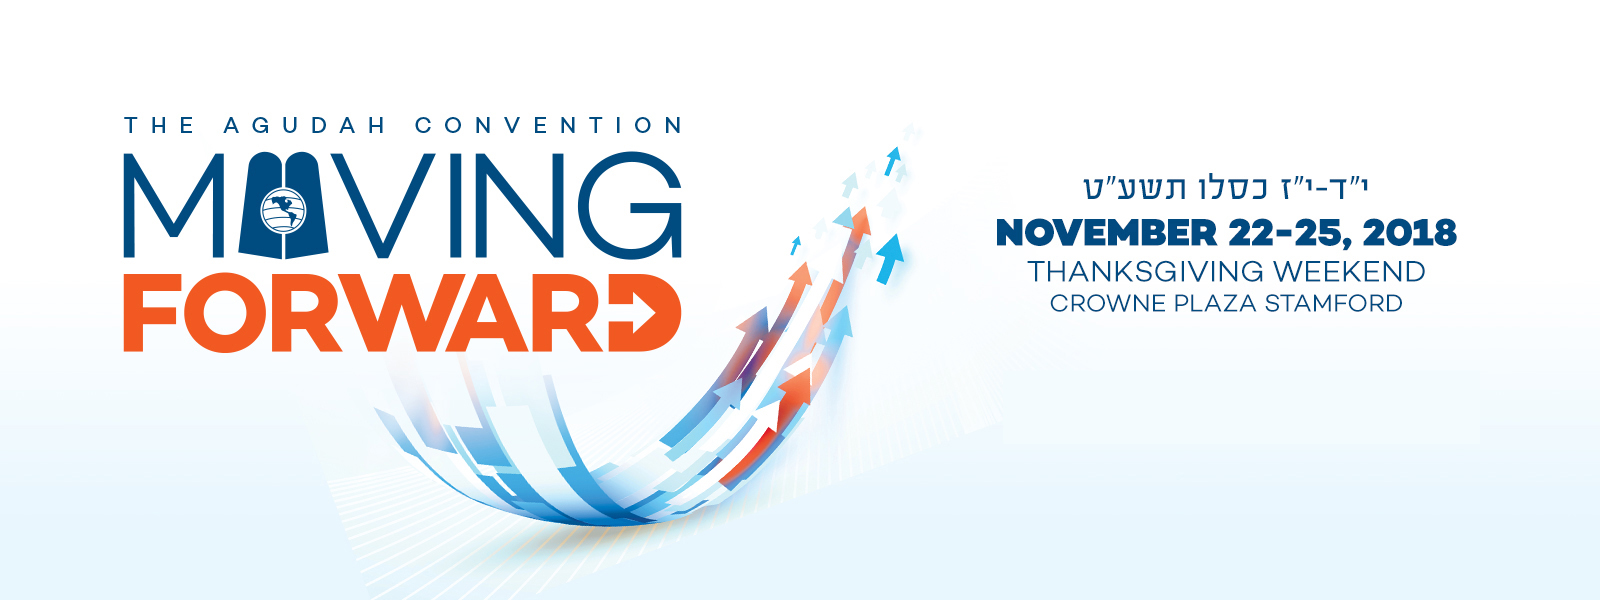 Convention 2018 - Moving Forward